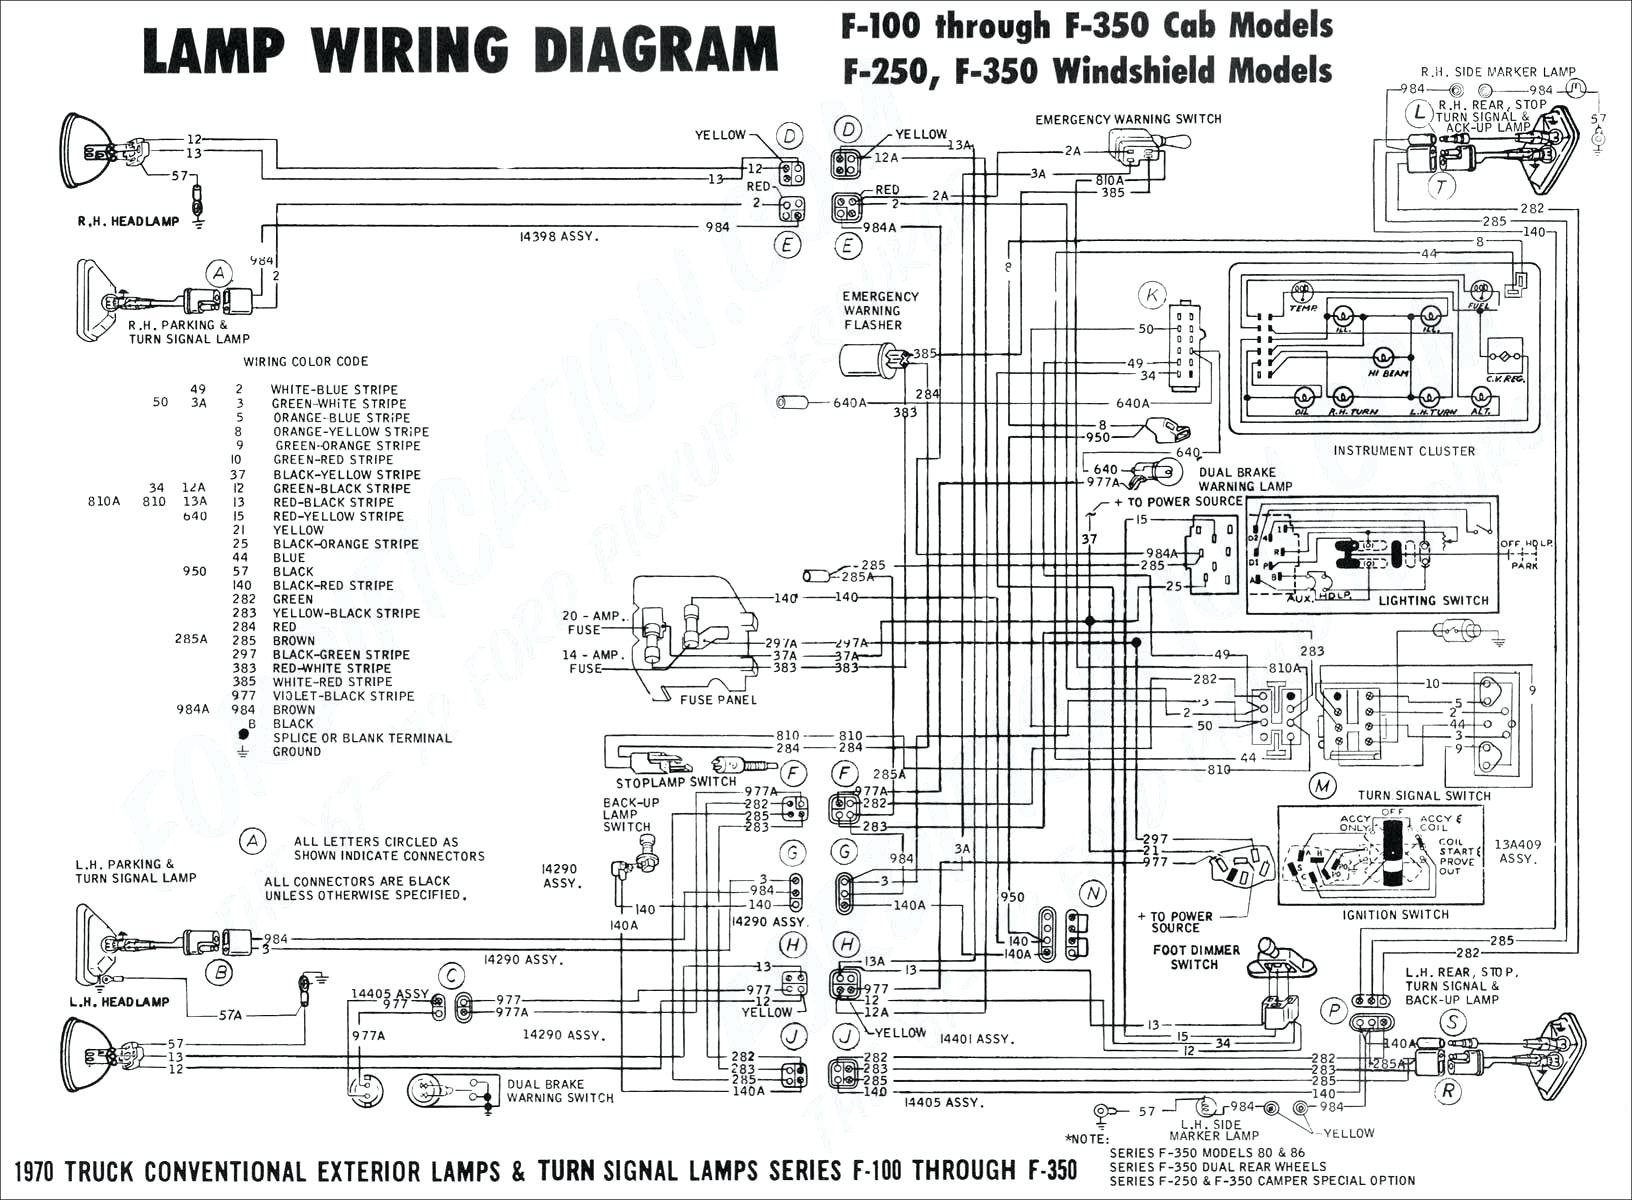 80 280zx harness pinout diagram apc wiring diagrams wiring library  apc wiring diagrams wiring library